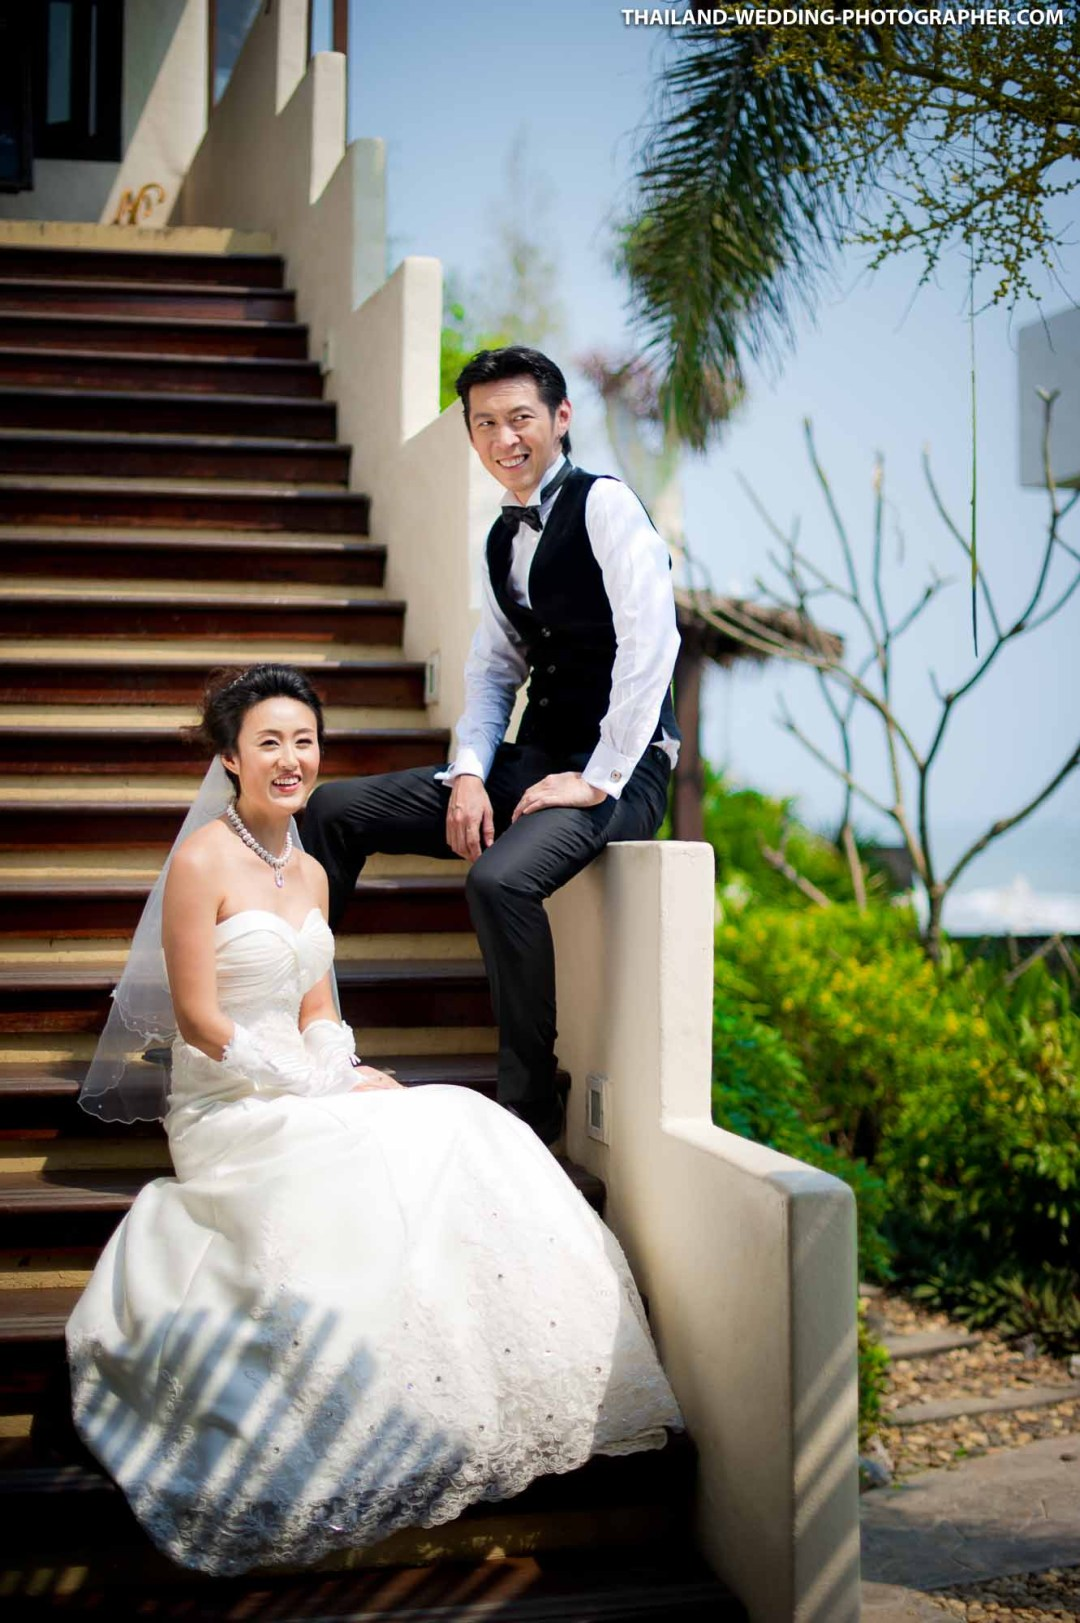 Aleenta Hua Hin Resort & Spa Thailand Wedding Photography